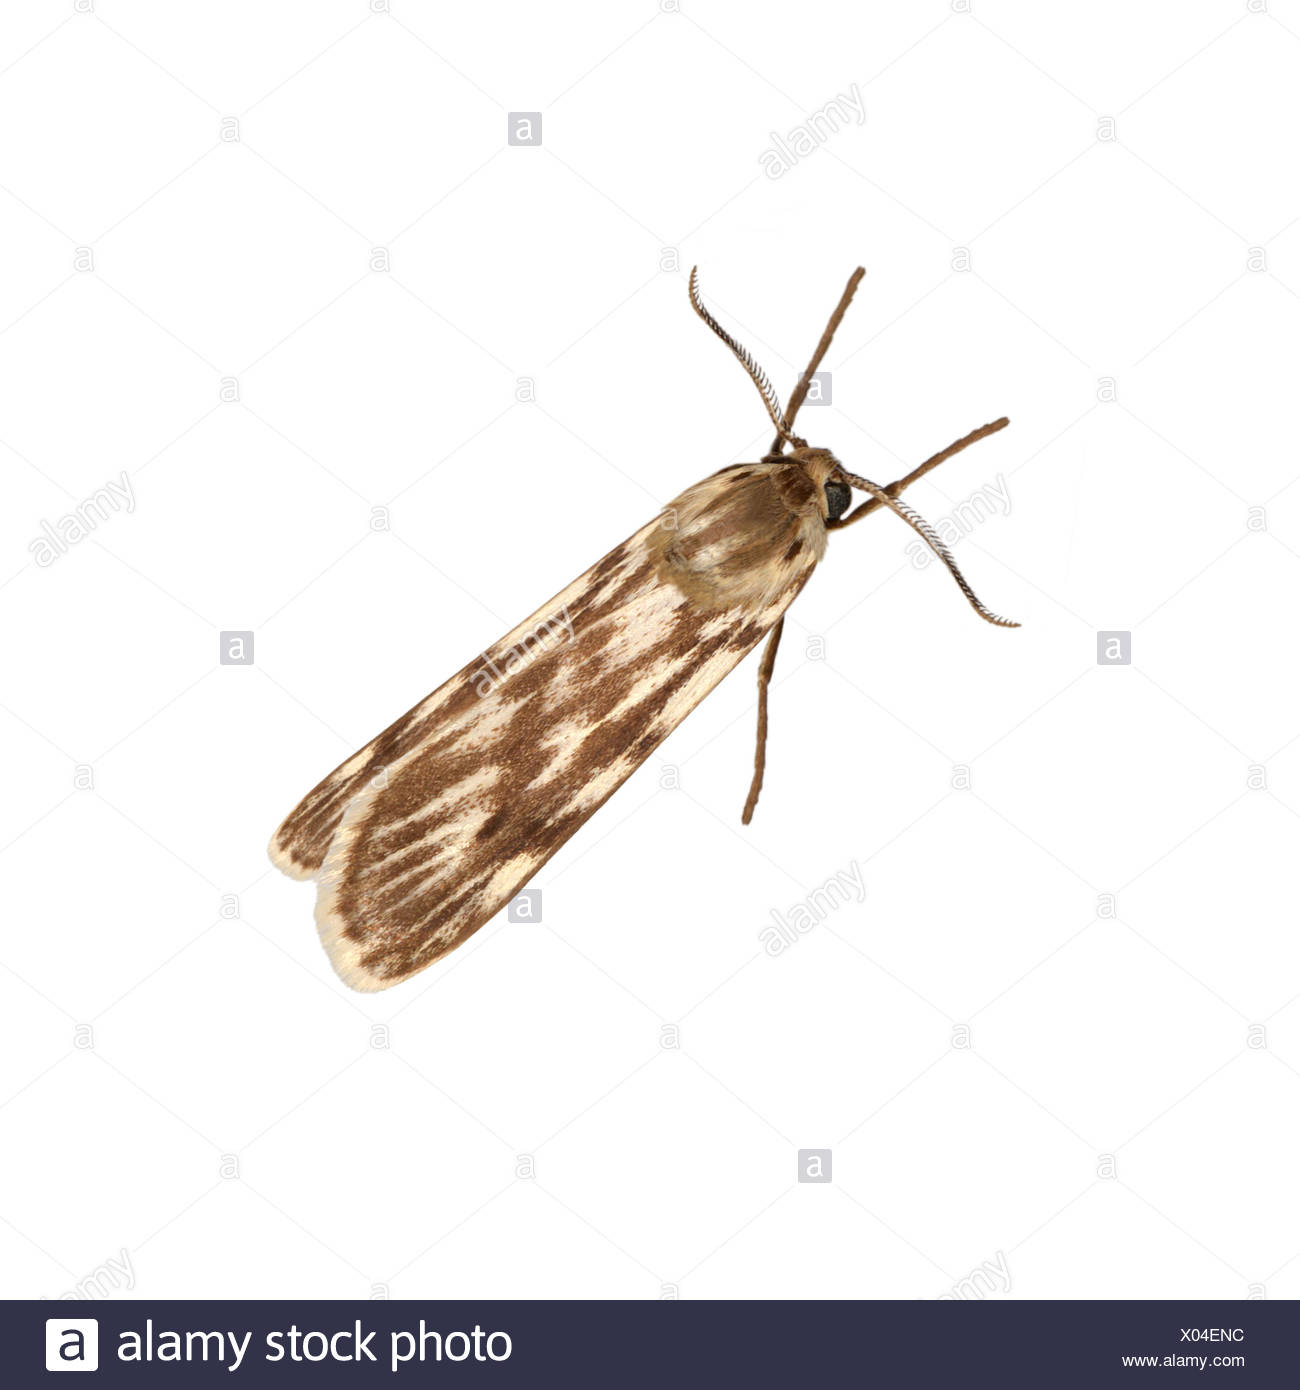 72.032 (2053) Speckled Footman - Coscinia cribraria - Stock Image